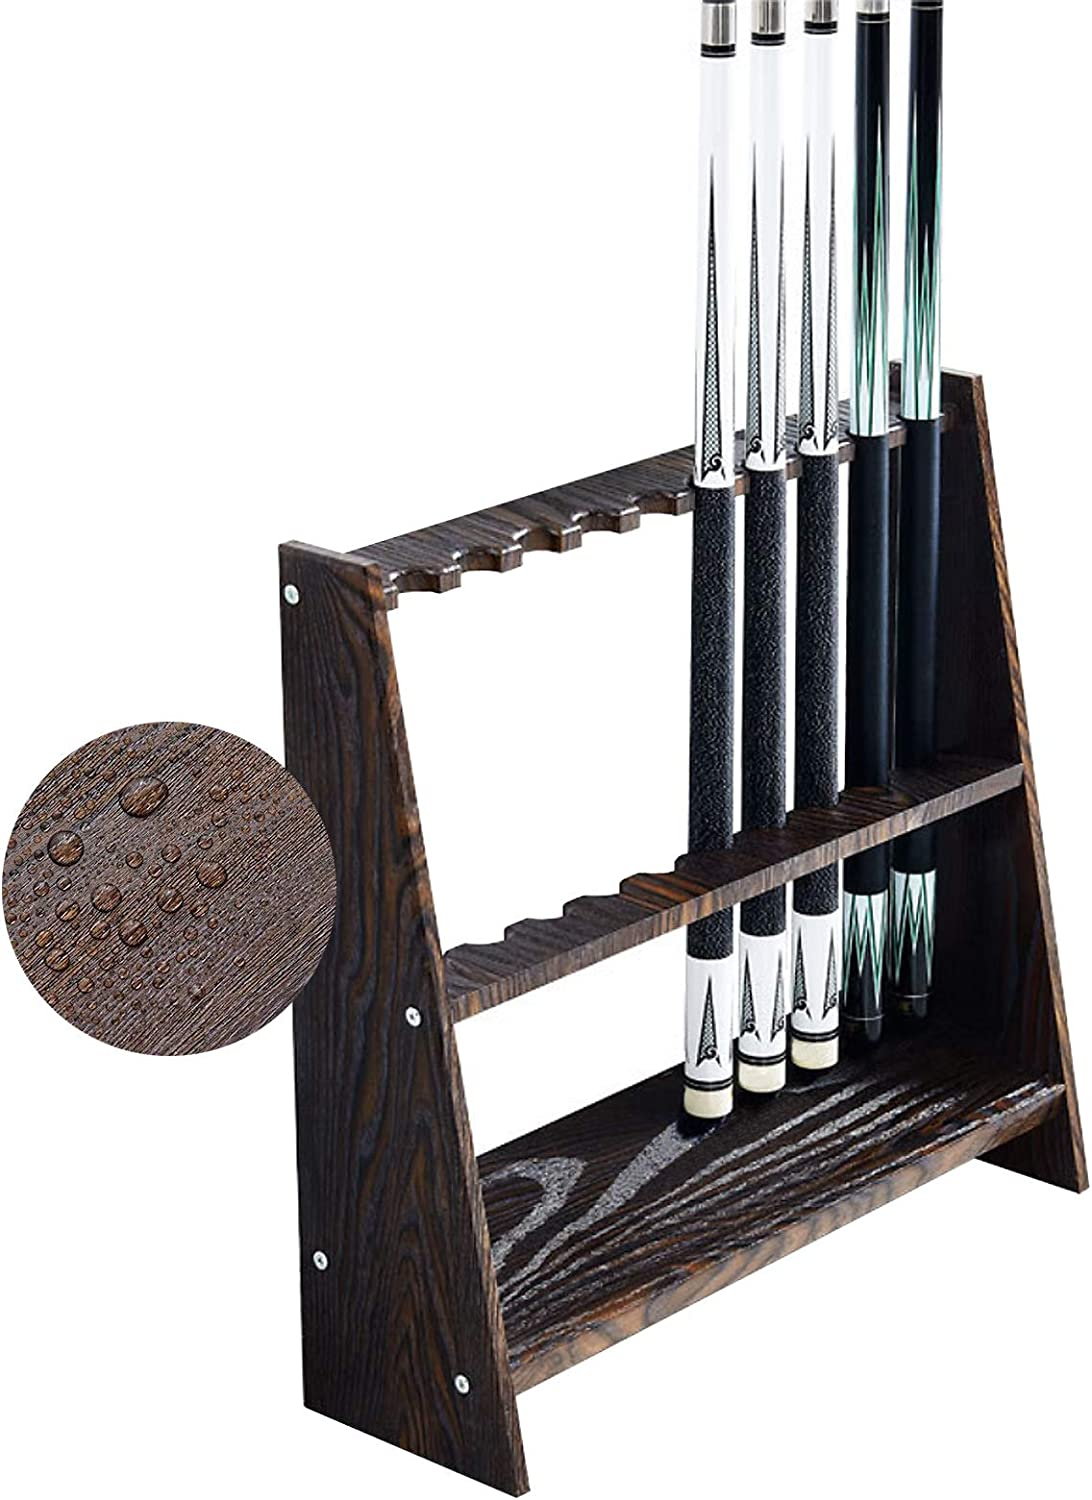 XYNH Stand Large-scale sale Billiard Pool Cue - Cues Com Rack 10 Holds Wood New mail order